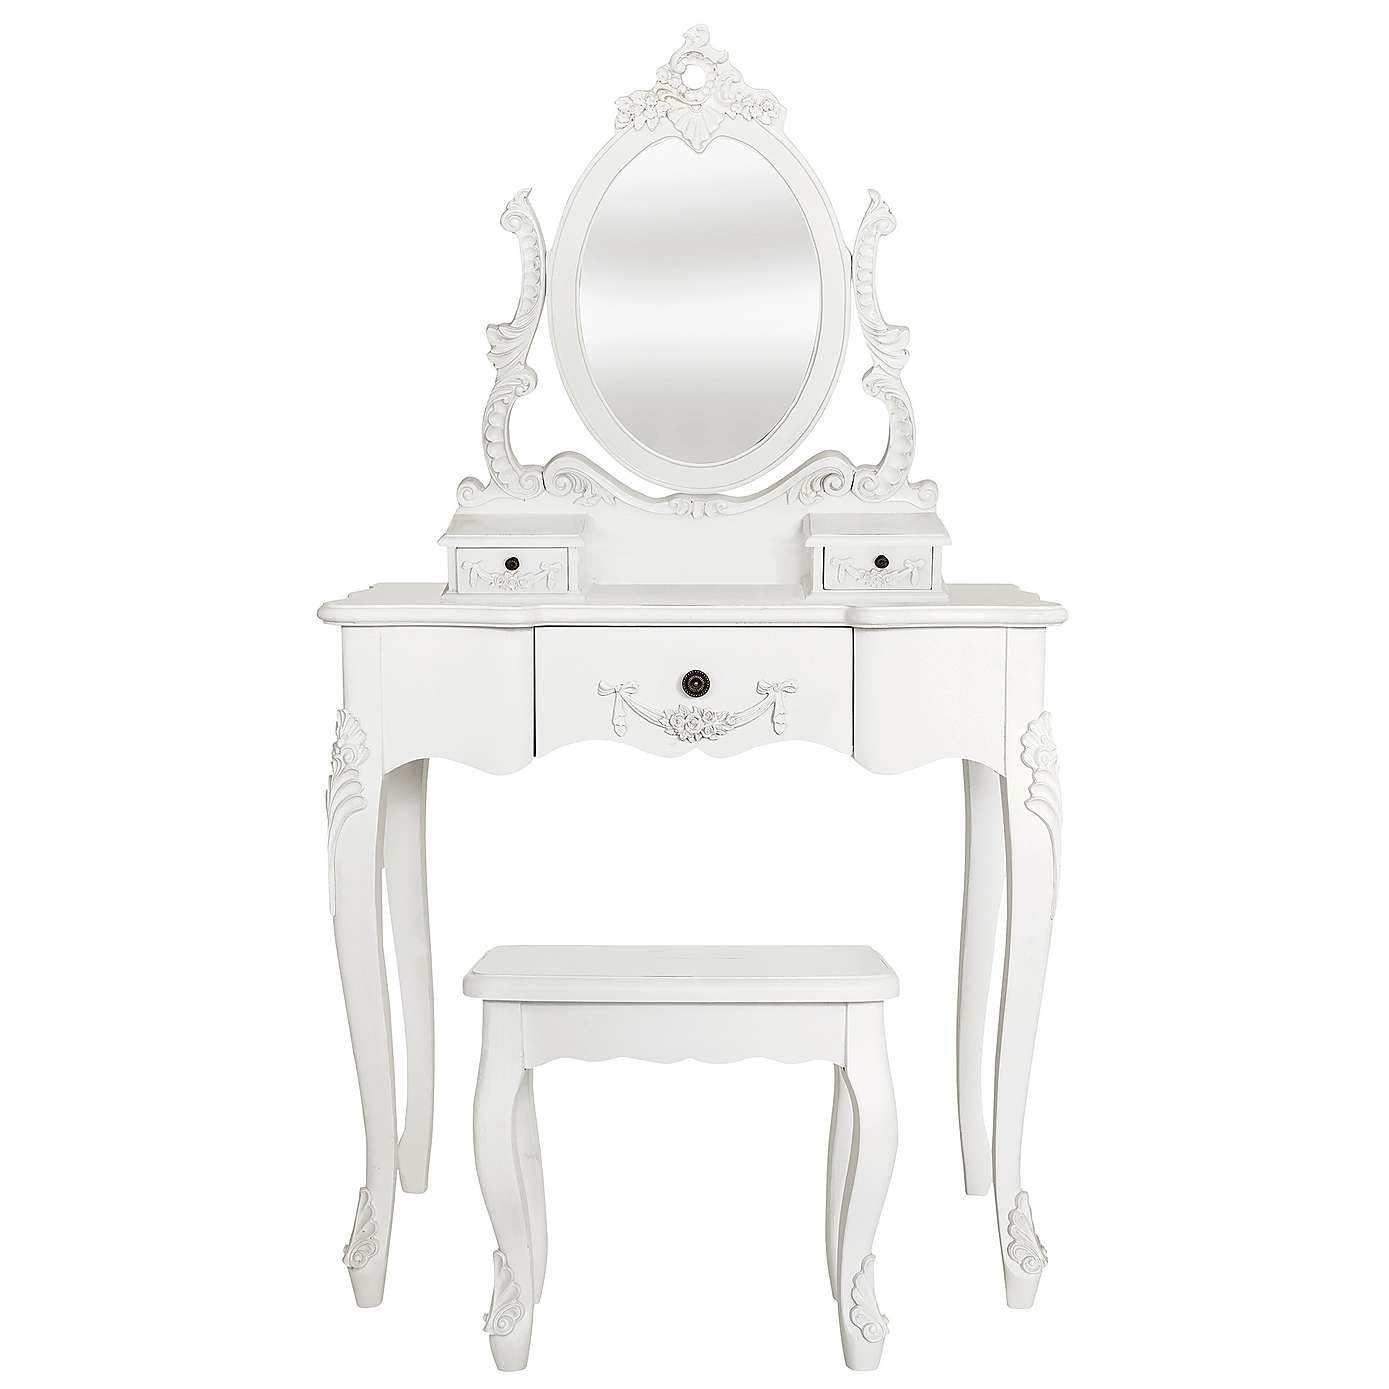 Toulouse White Dressing Table Set White Dressing Tables - Toulouse bedroom furniture white